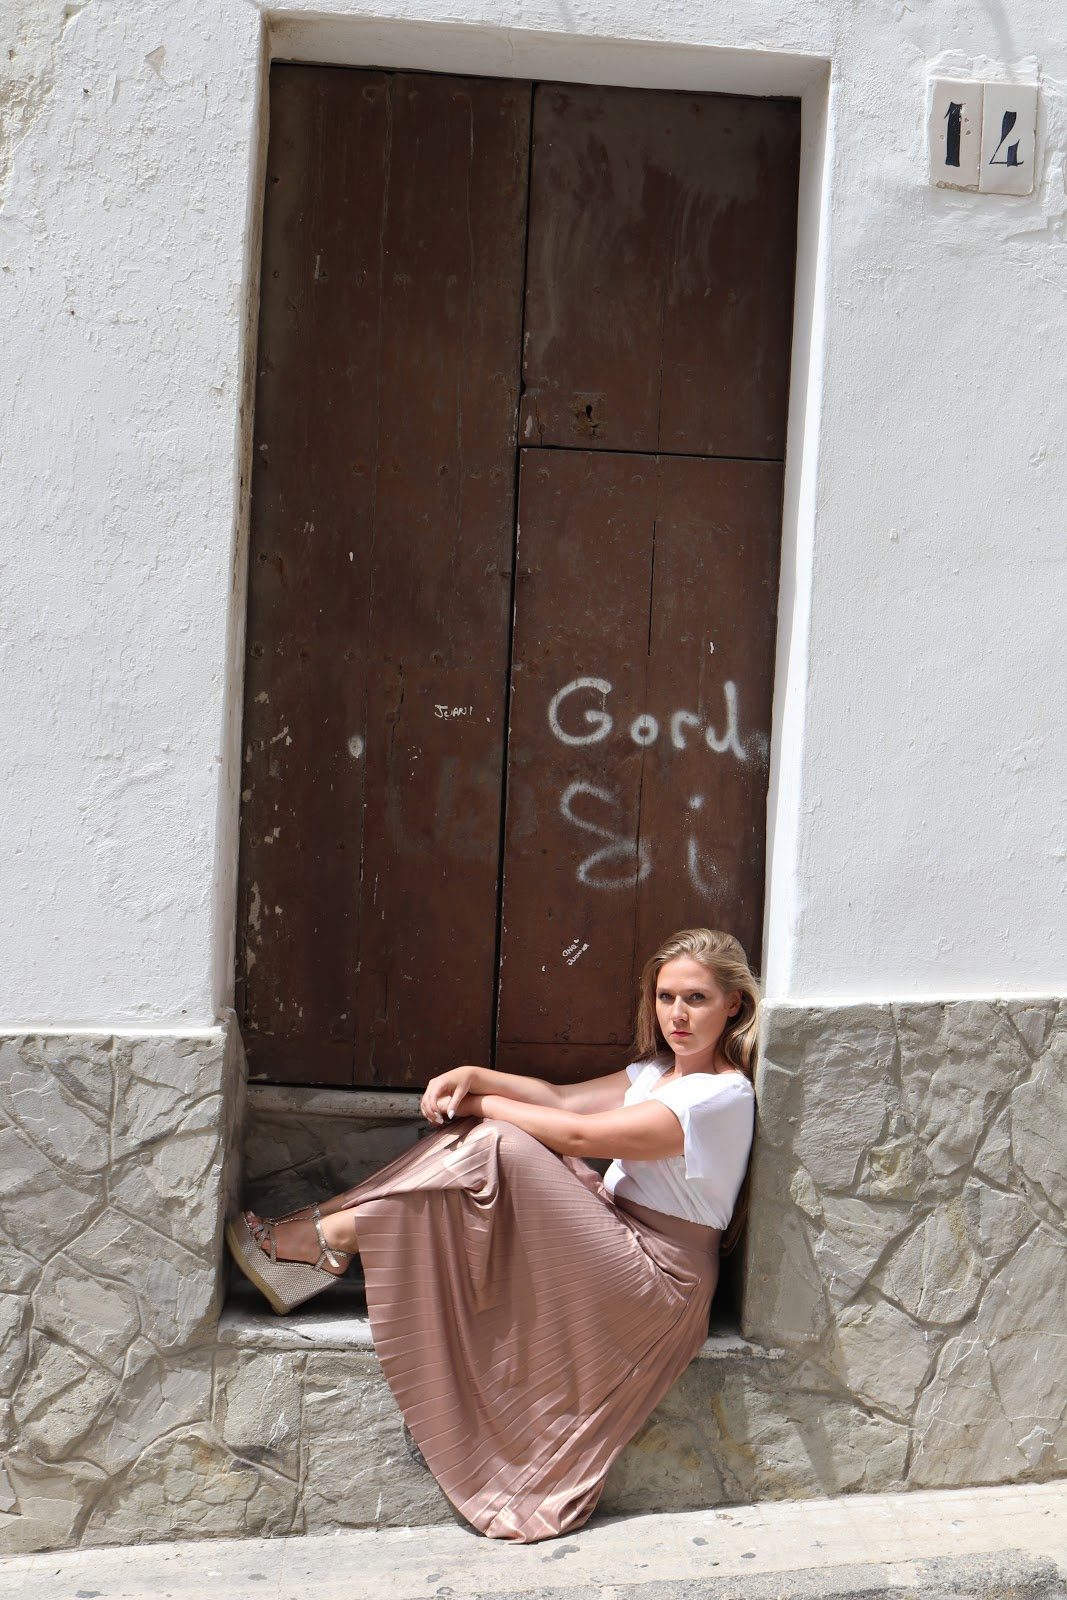 Blonde girl wearing metallic skirt sitting in a doorway in Tarifa, Spain